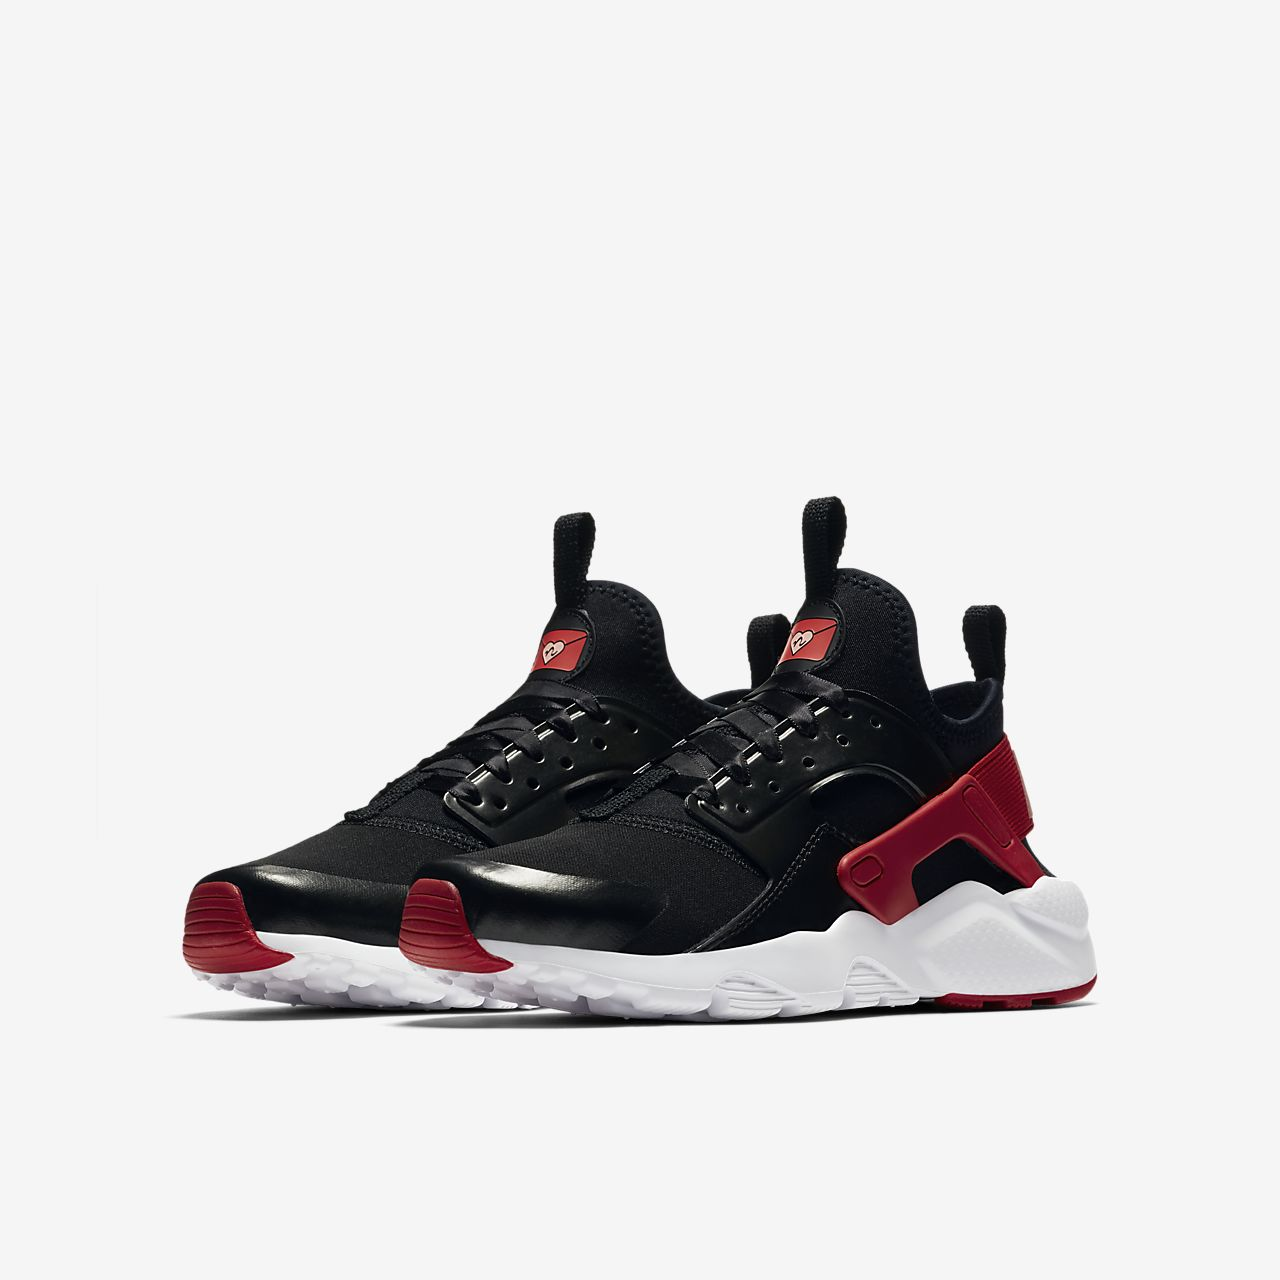 best website 42d11 825b4 air-huarache-run-ultra-qs-schuh-fur-altere-gXTOG7nj.jpg